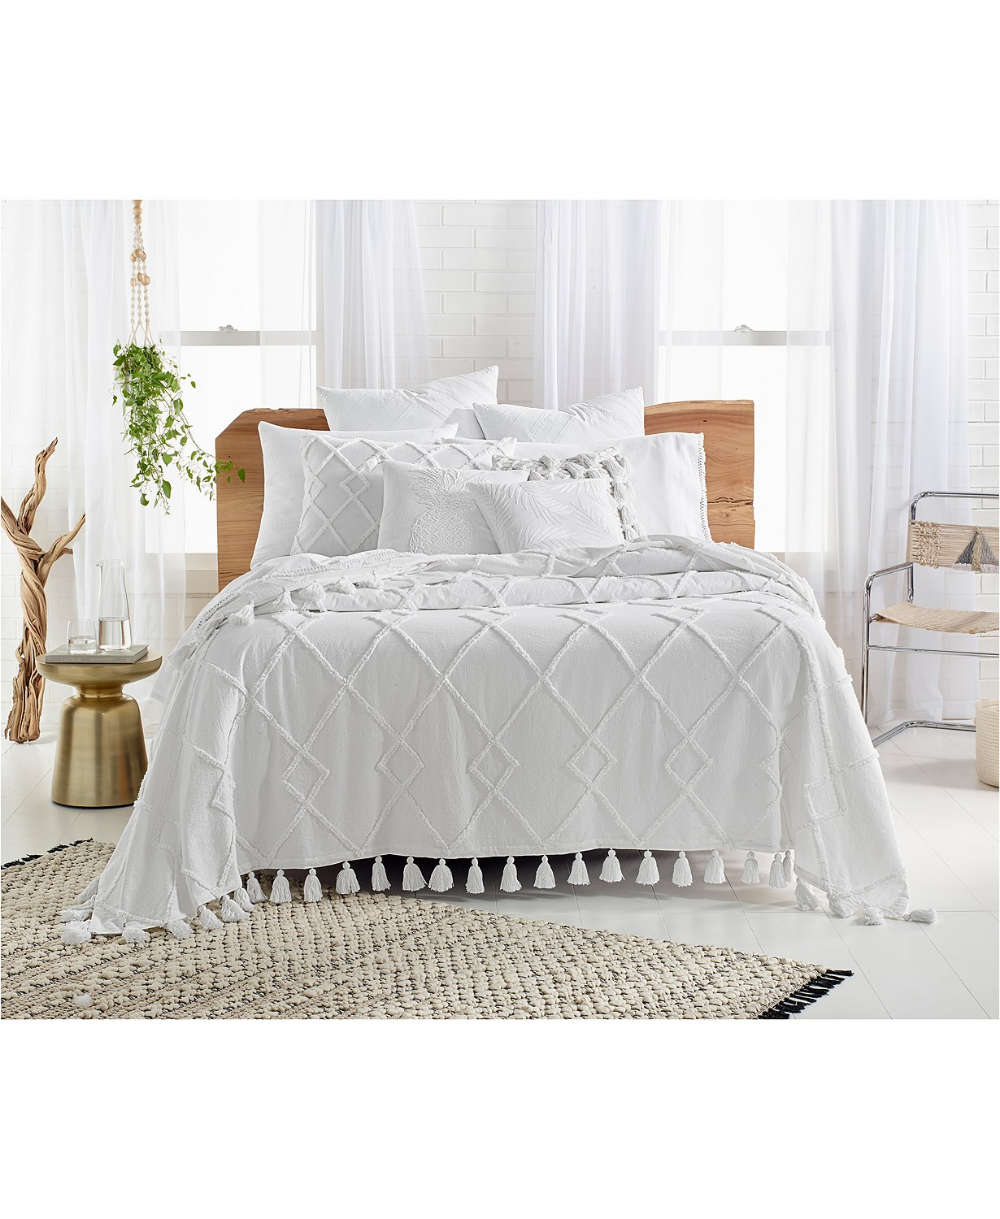 Diamond Tuft Queen Bed Cover, Created for Macy's Tufted